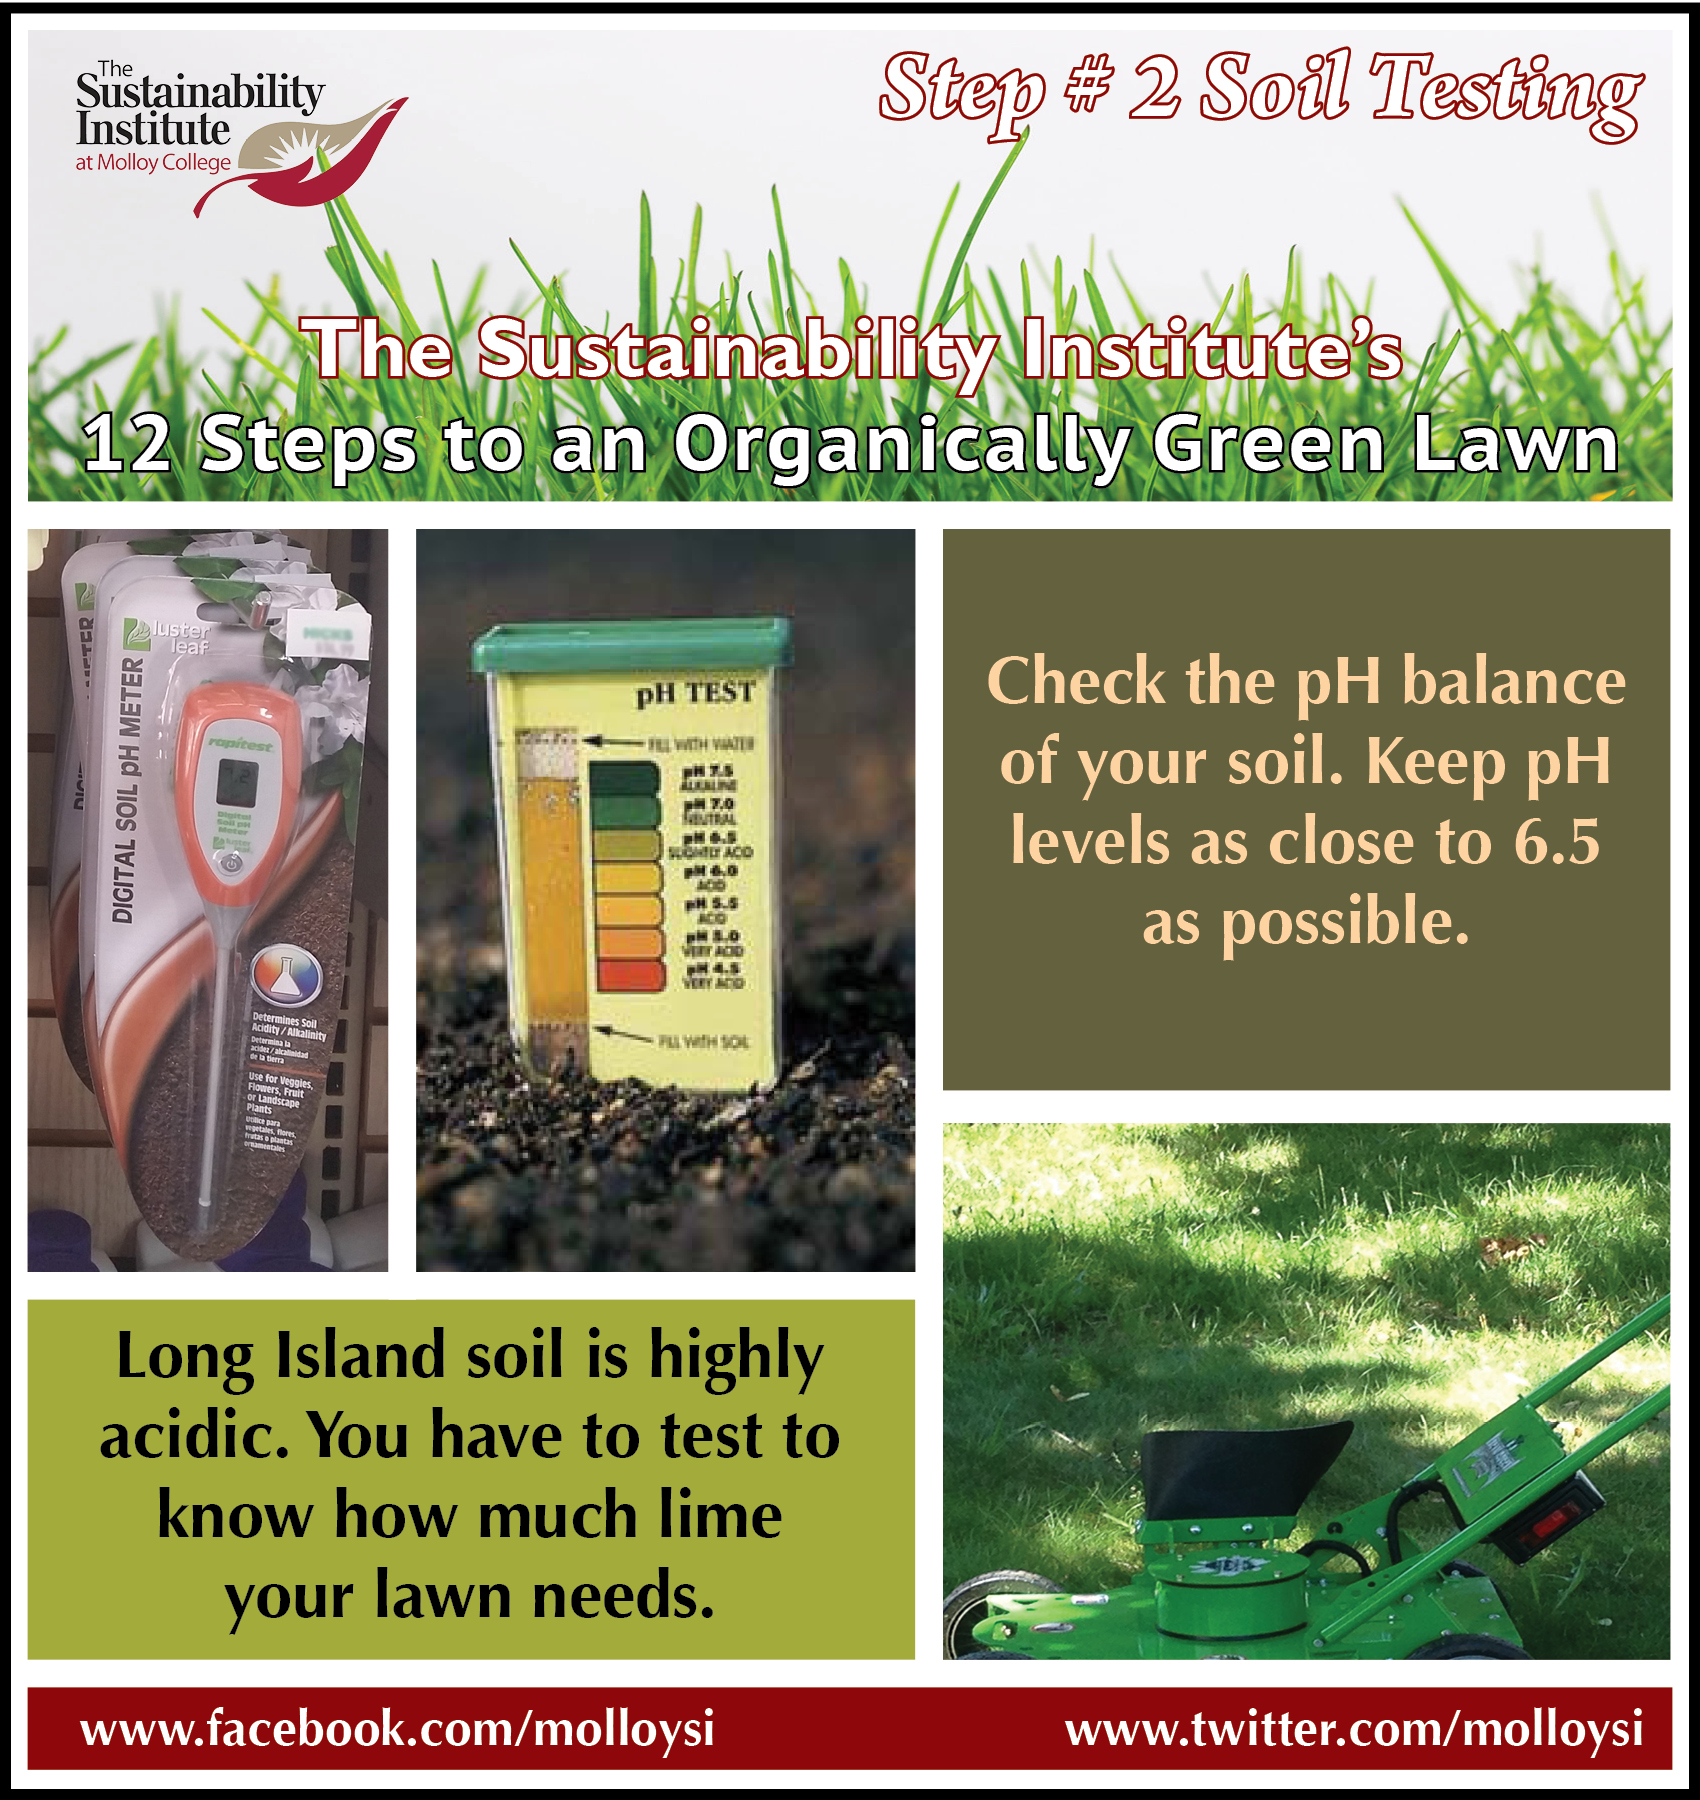 Molloy College: STEP 2 Soil pH Testing